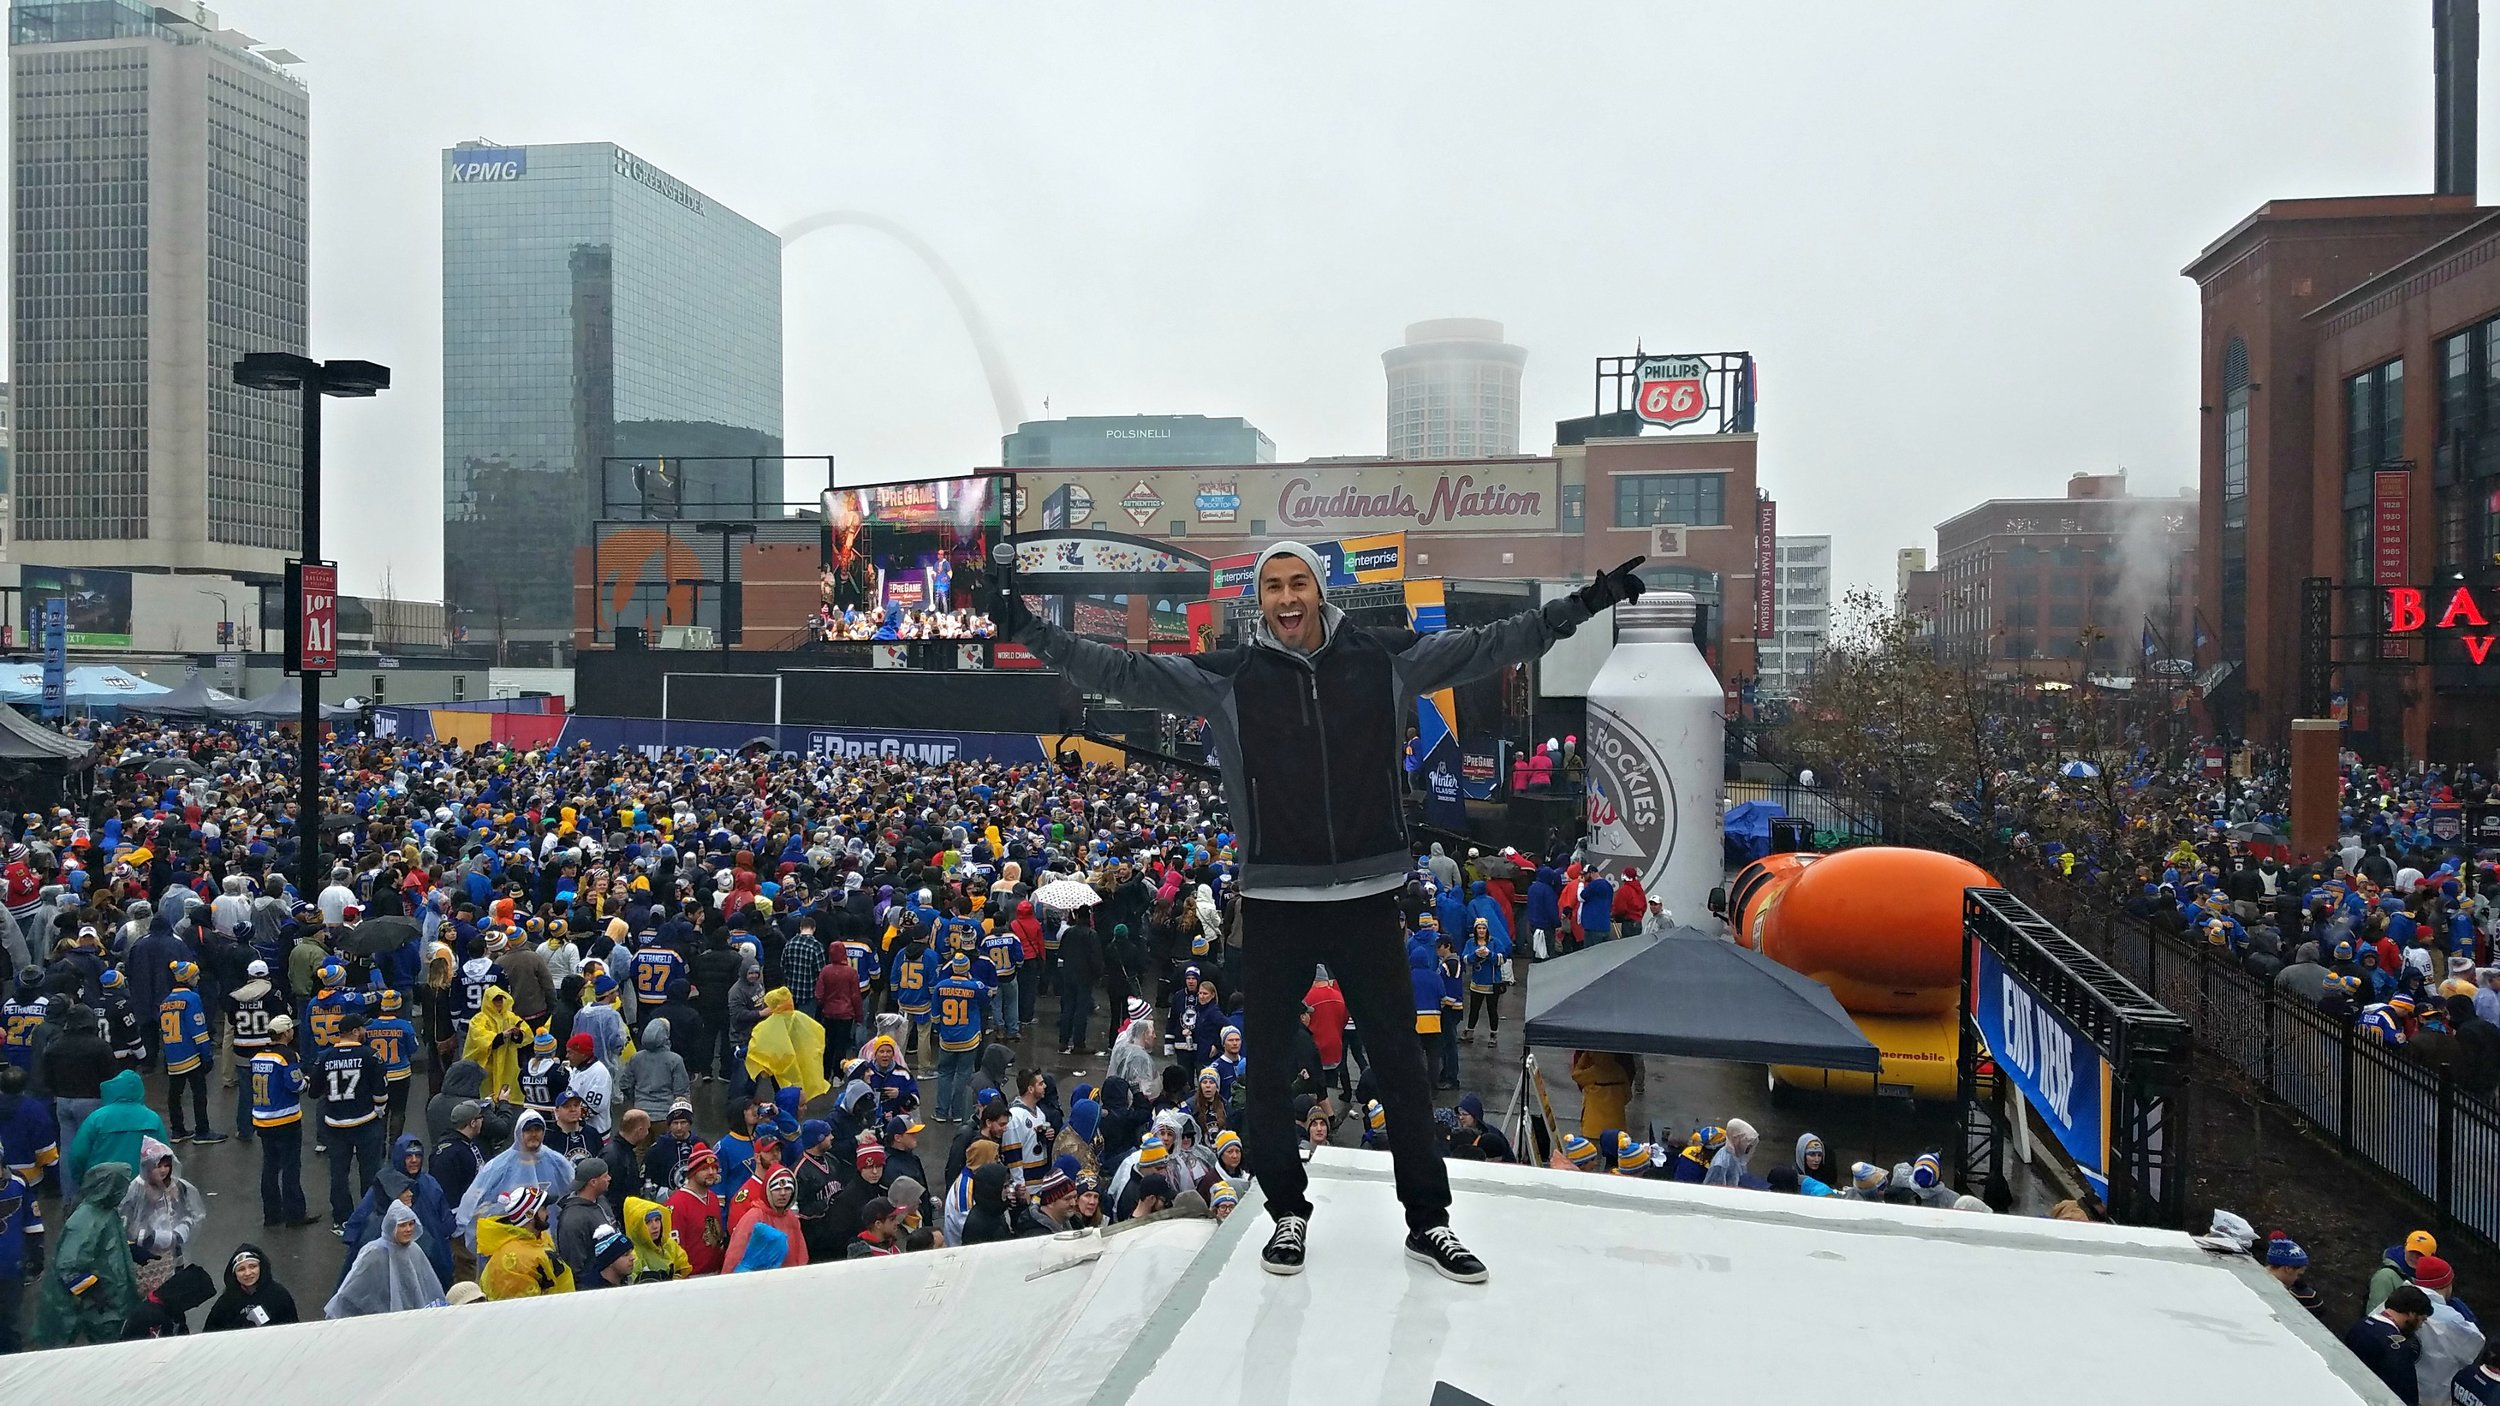 PBP NHL Winter Classic St Louis Missouri.jpg